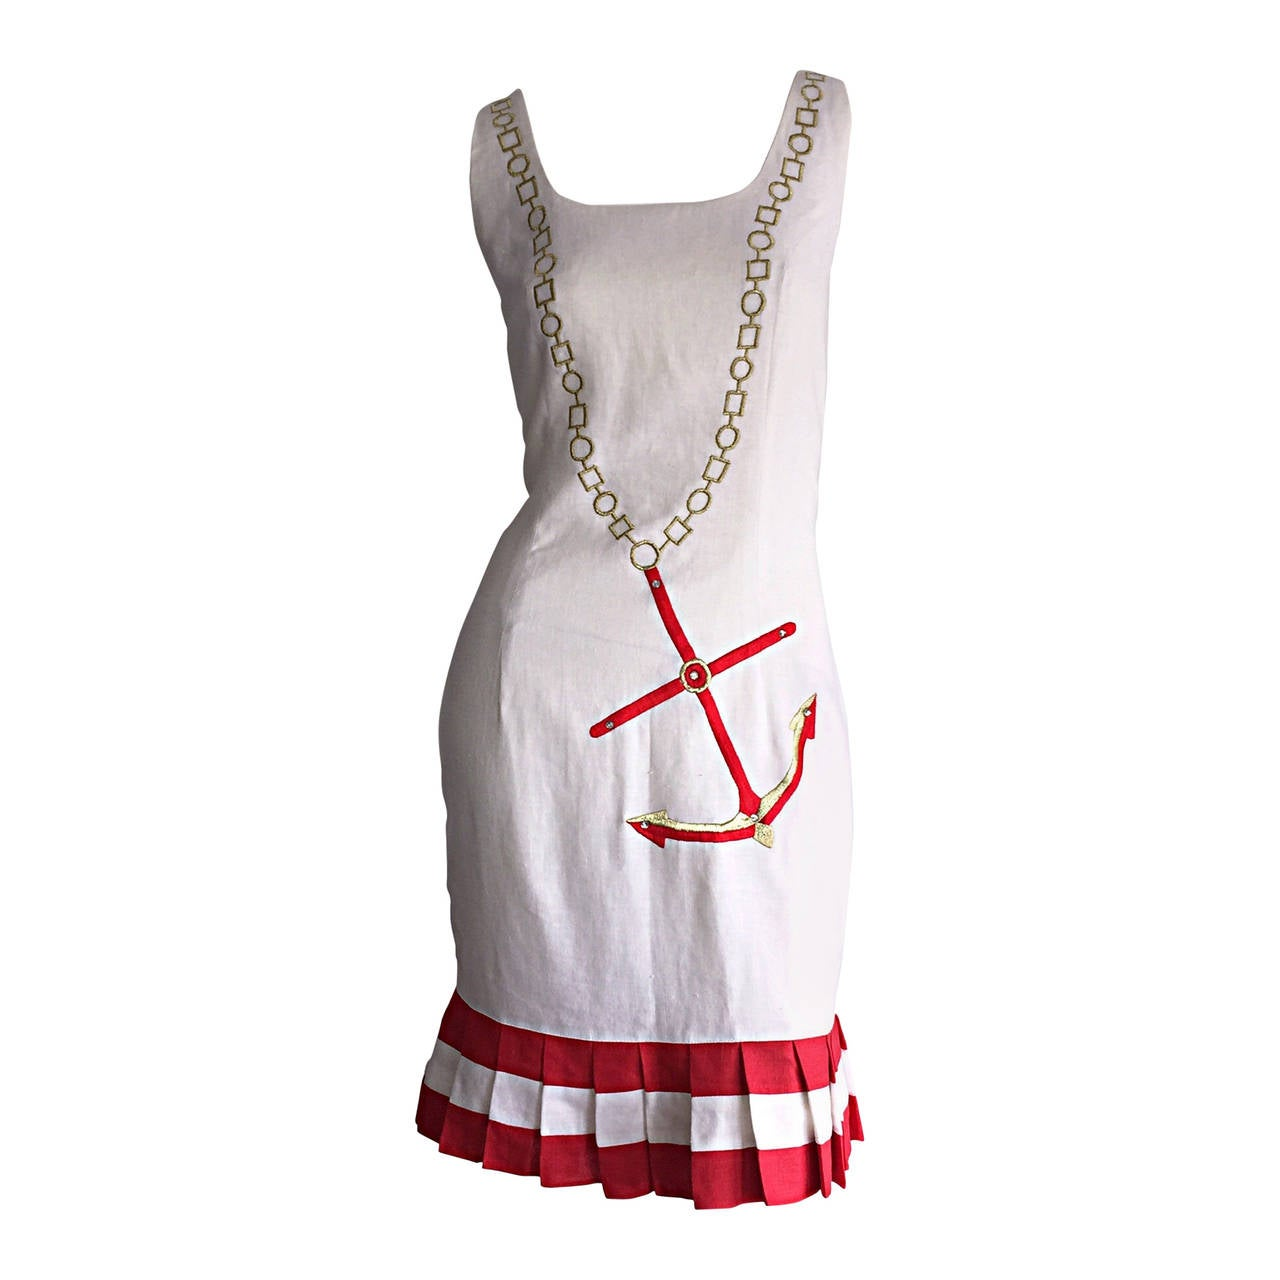 Amazing Vintage Nautical Anchor Novelty Chain Necklace Print Linen Dress